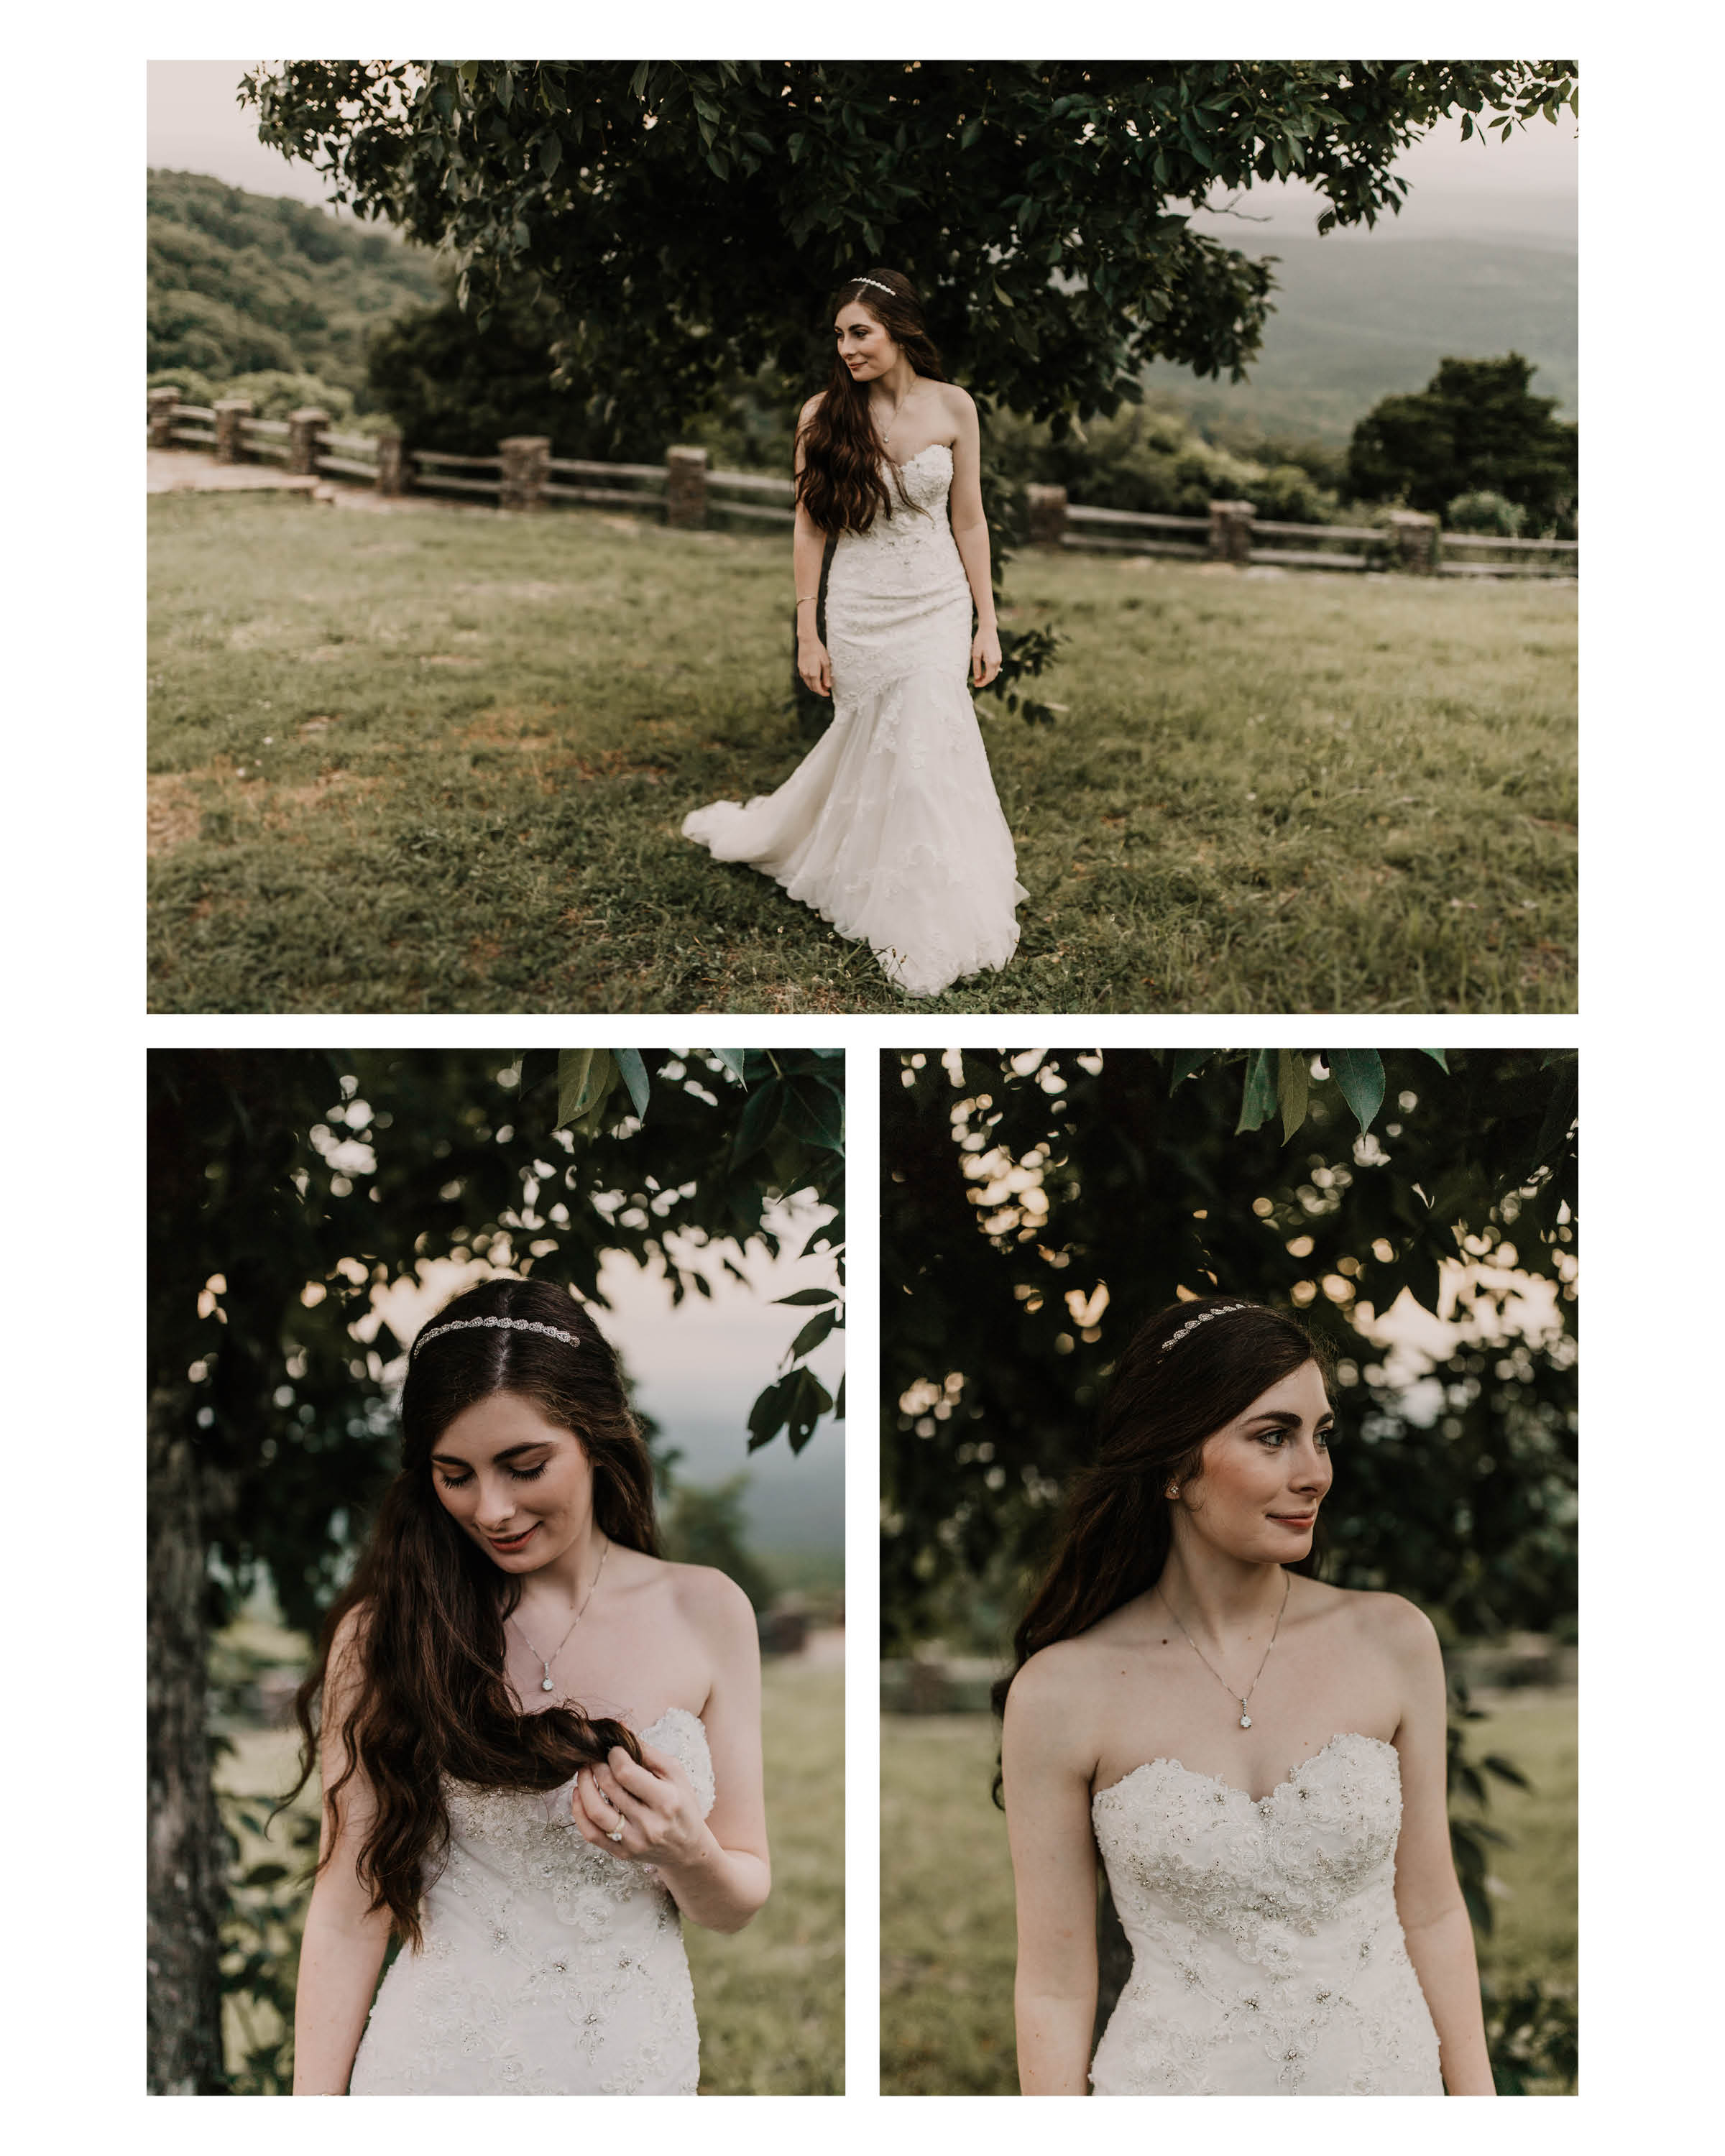 Mount-Magazine-Bridal-Portraits-arkansas